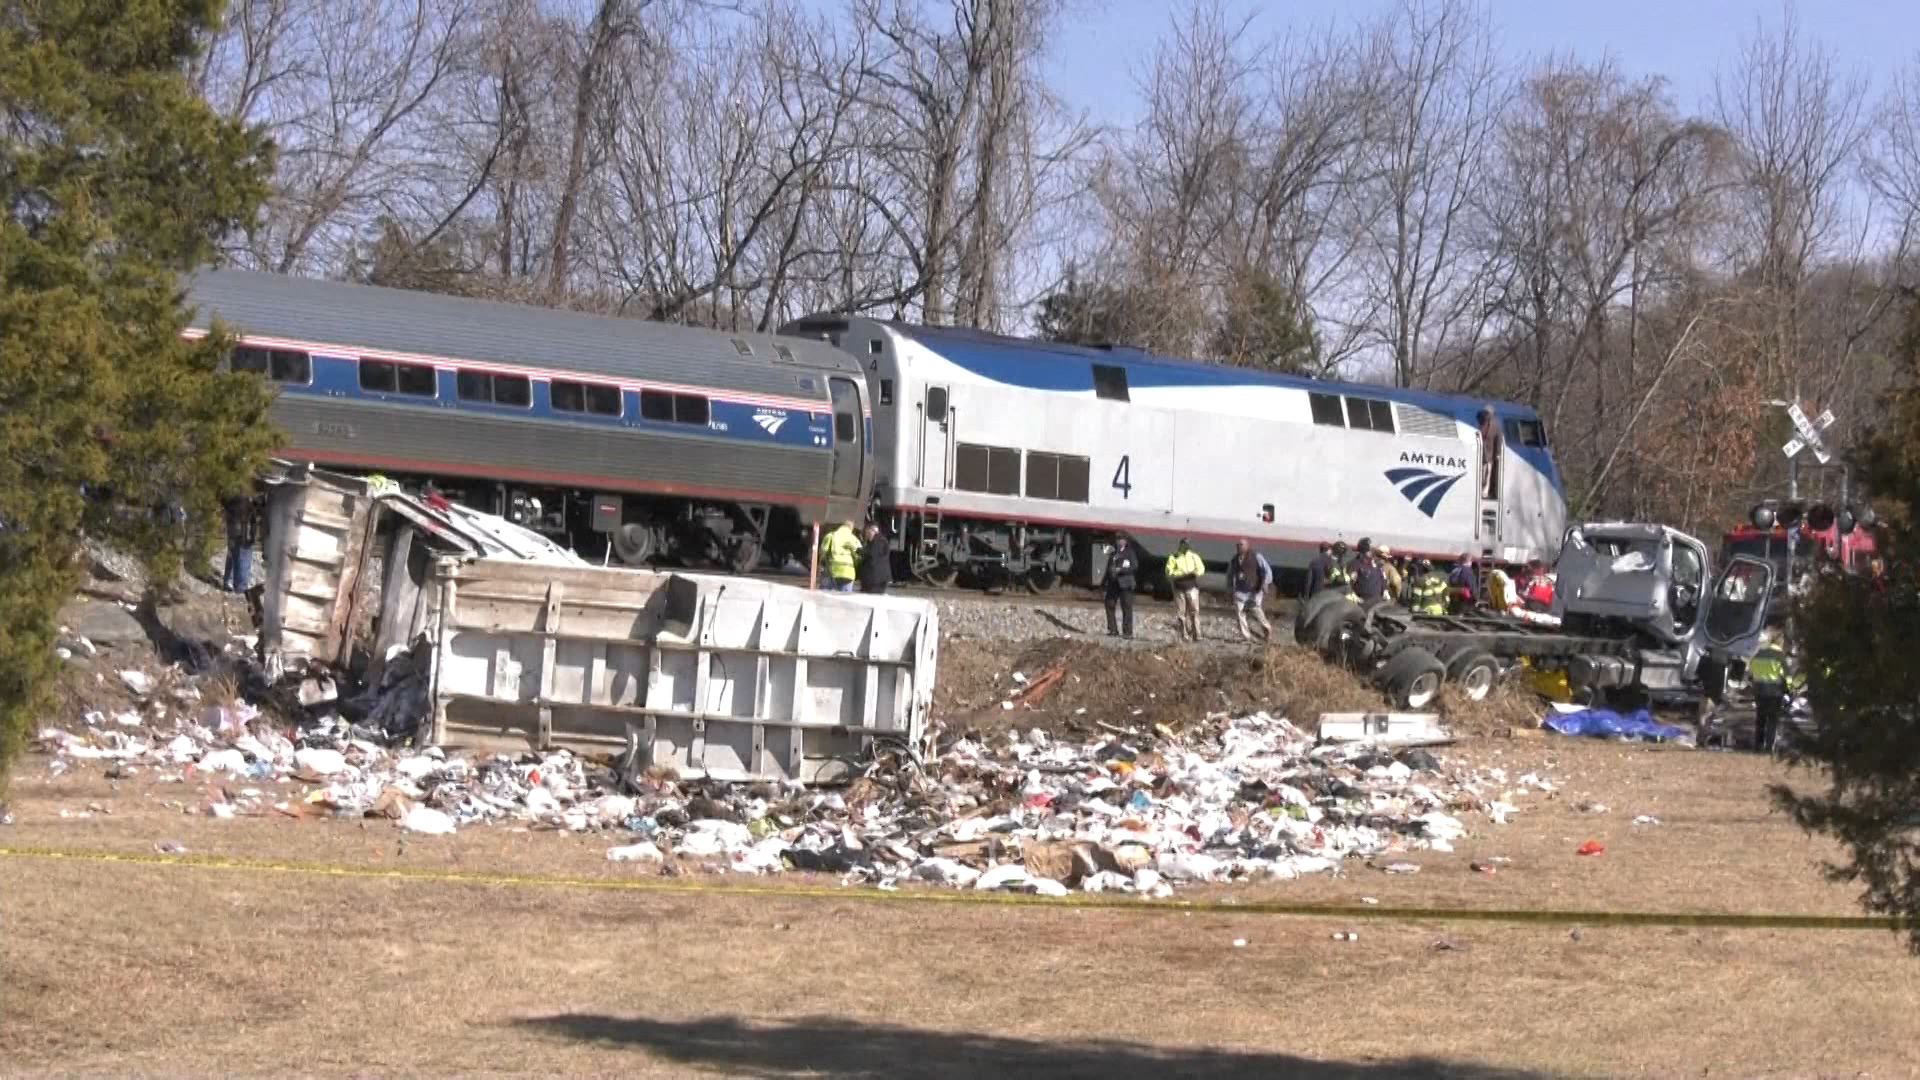 NTSB takes over investigation of Amtrak train collision in Crozet